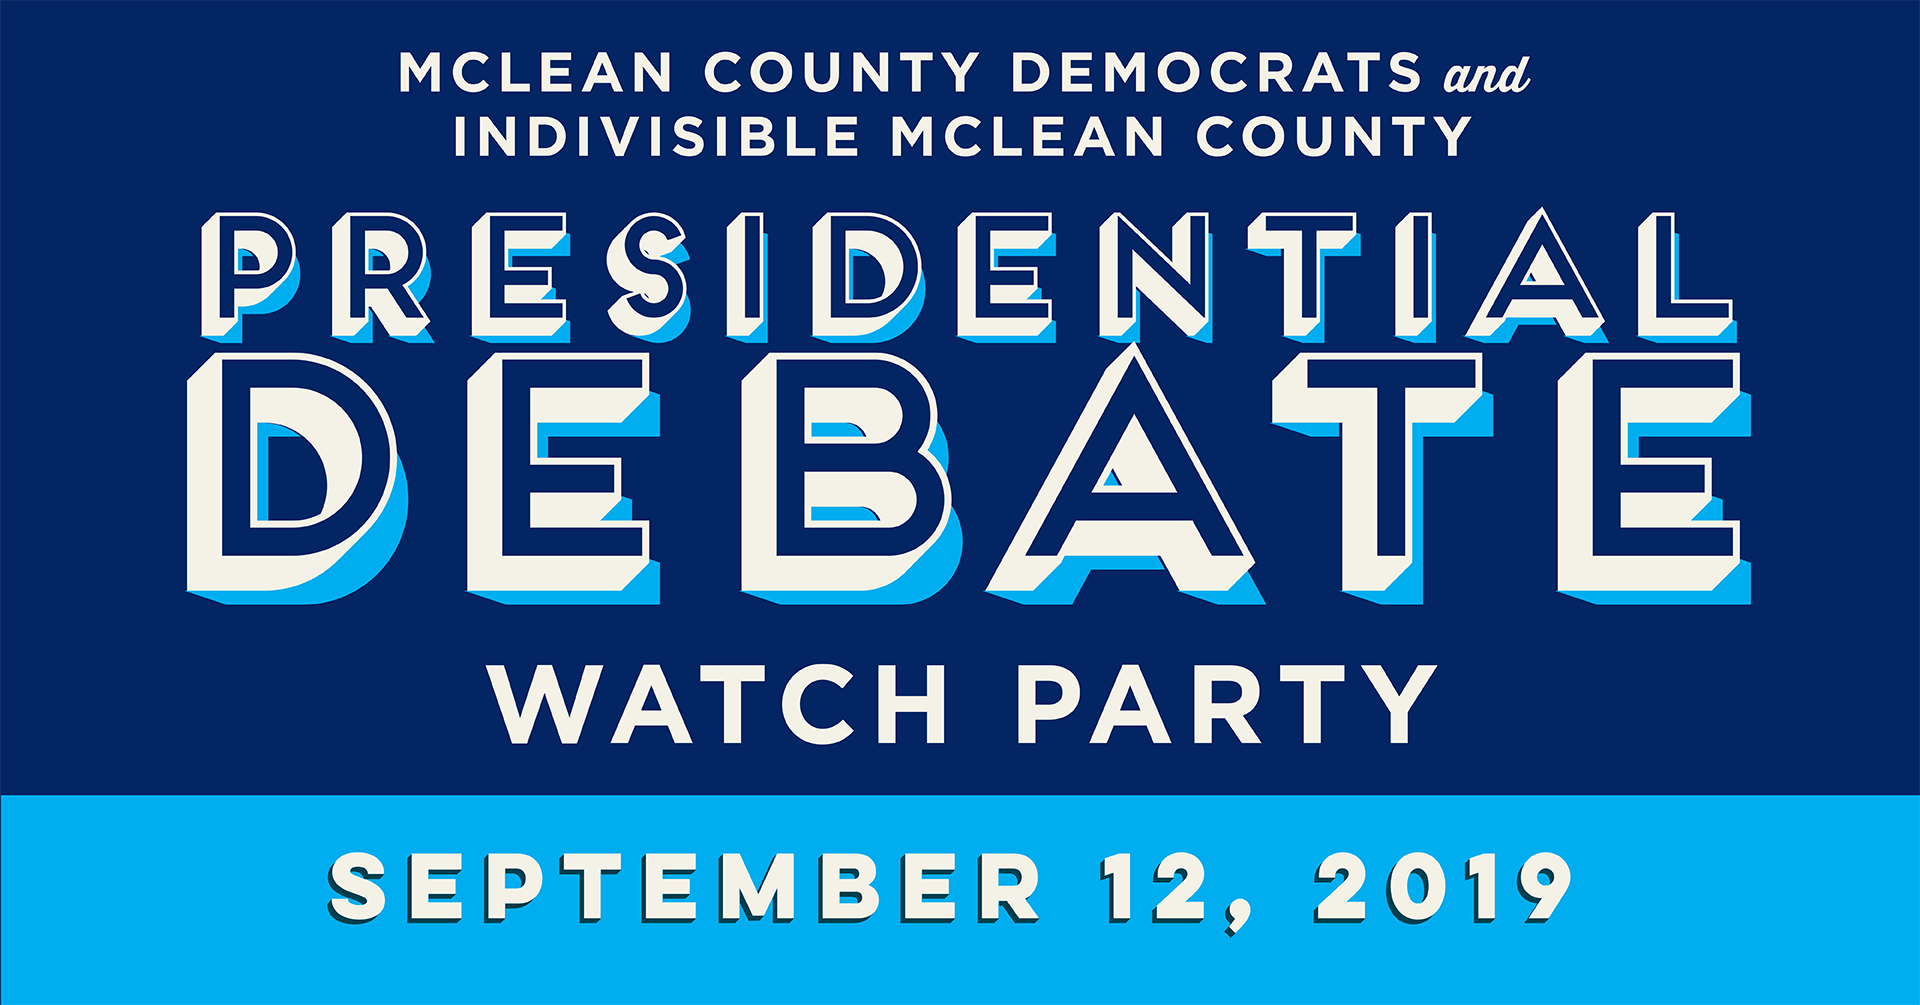 Debate Watch Party  9/12/19  6 PM 422 N Main St